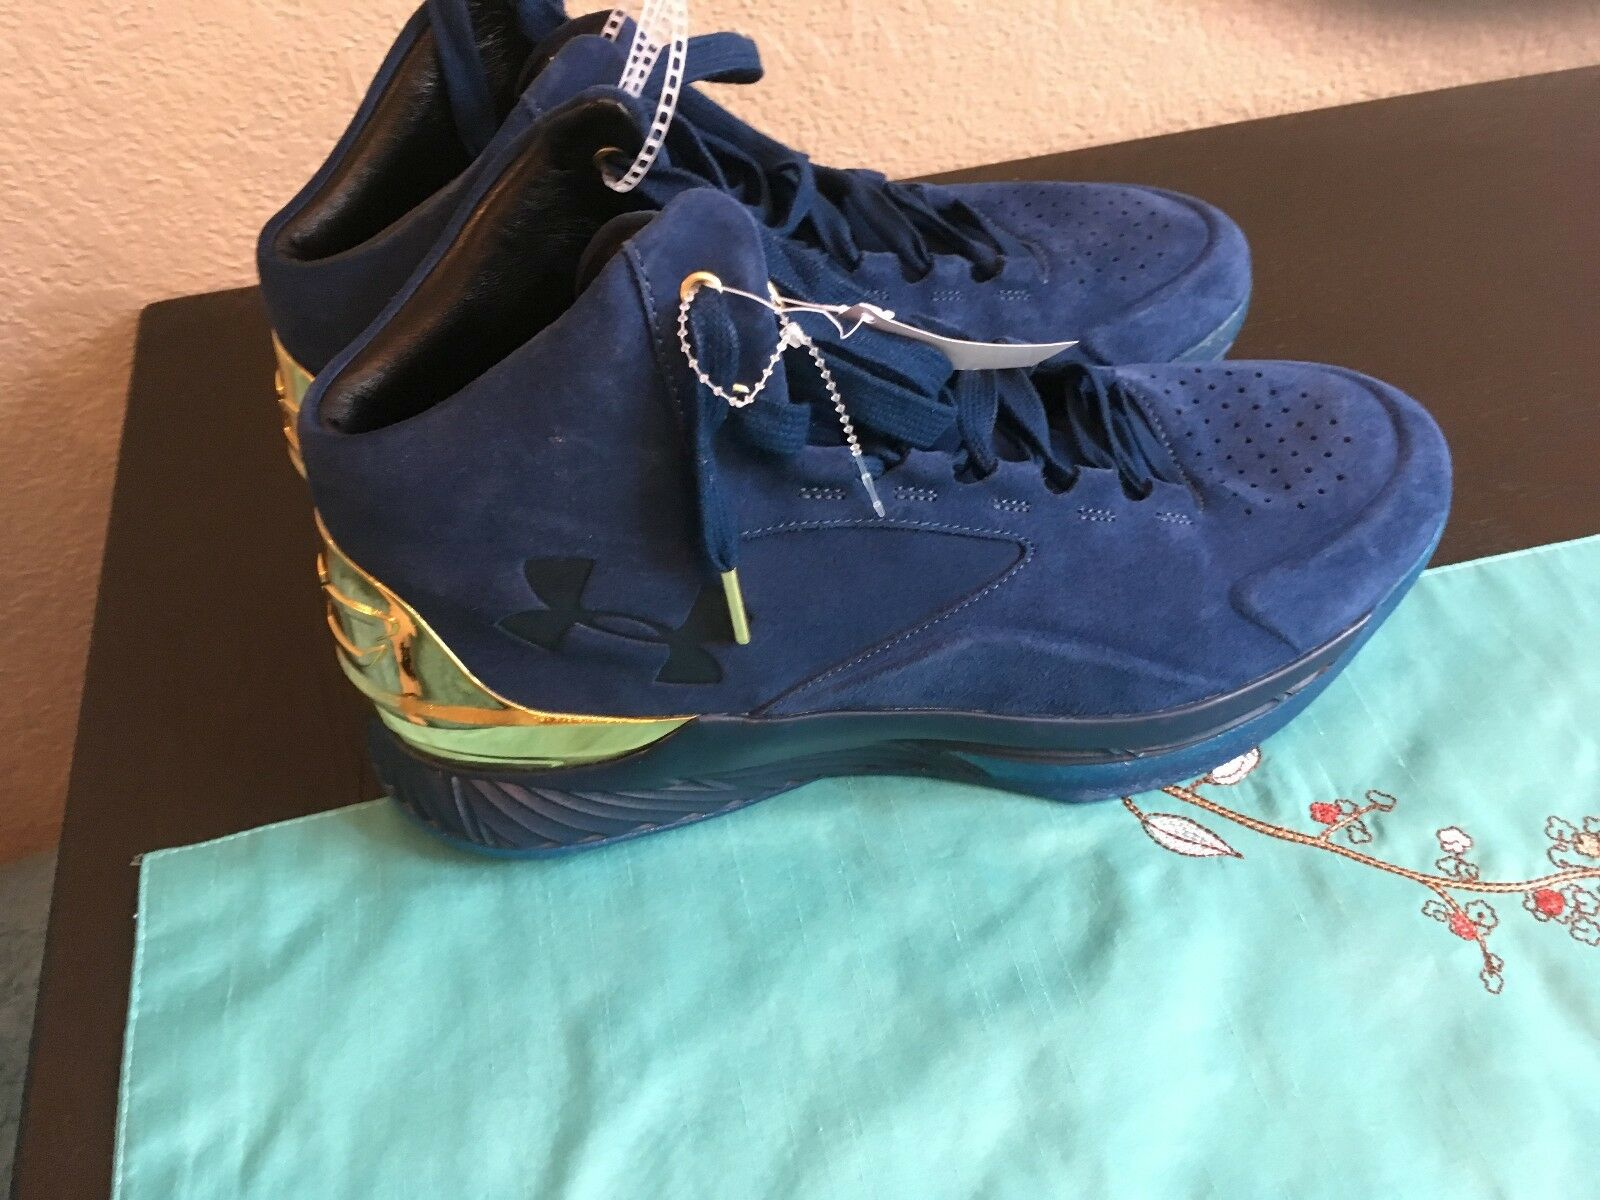 NEW Sz 13 Under Armour CURRY Lux Hightop Basketball Navy Gold Shoes 1296617-997